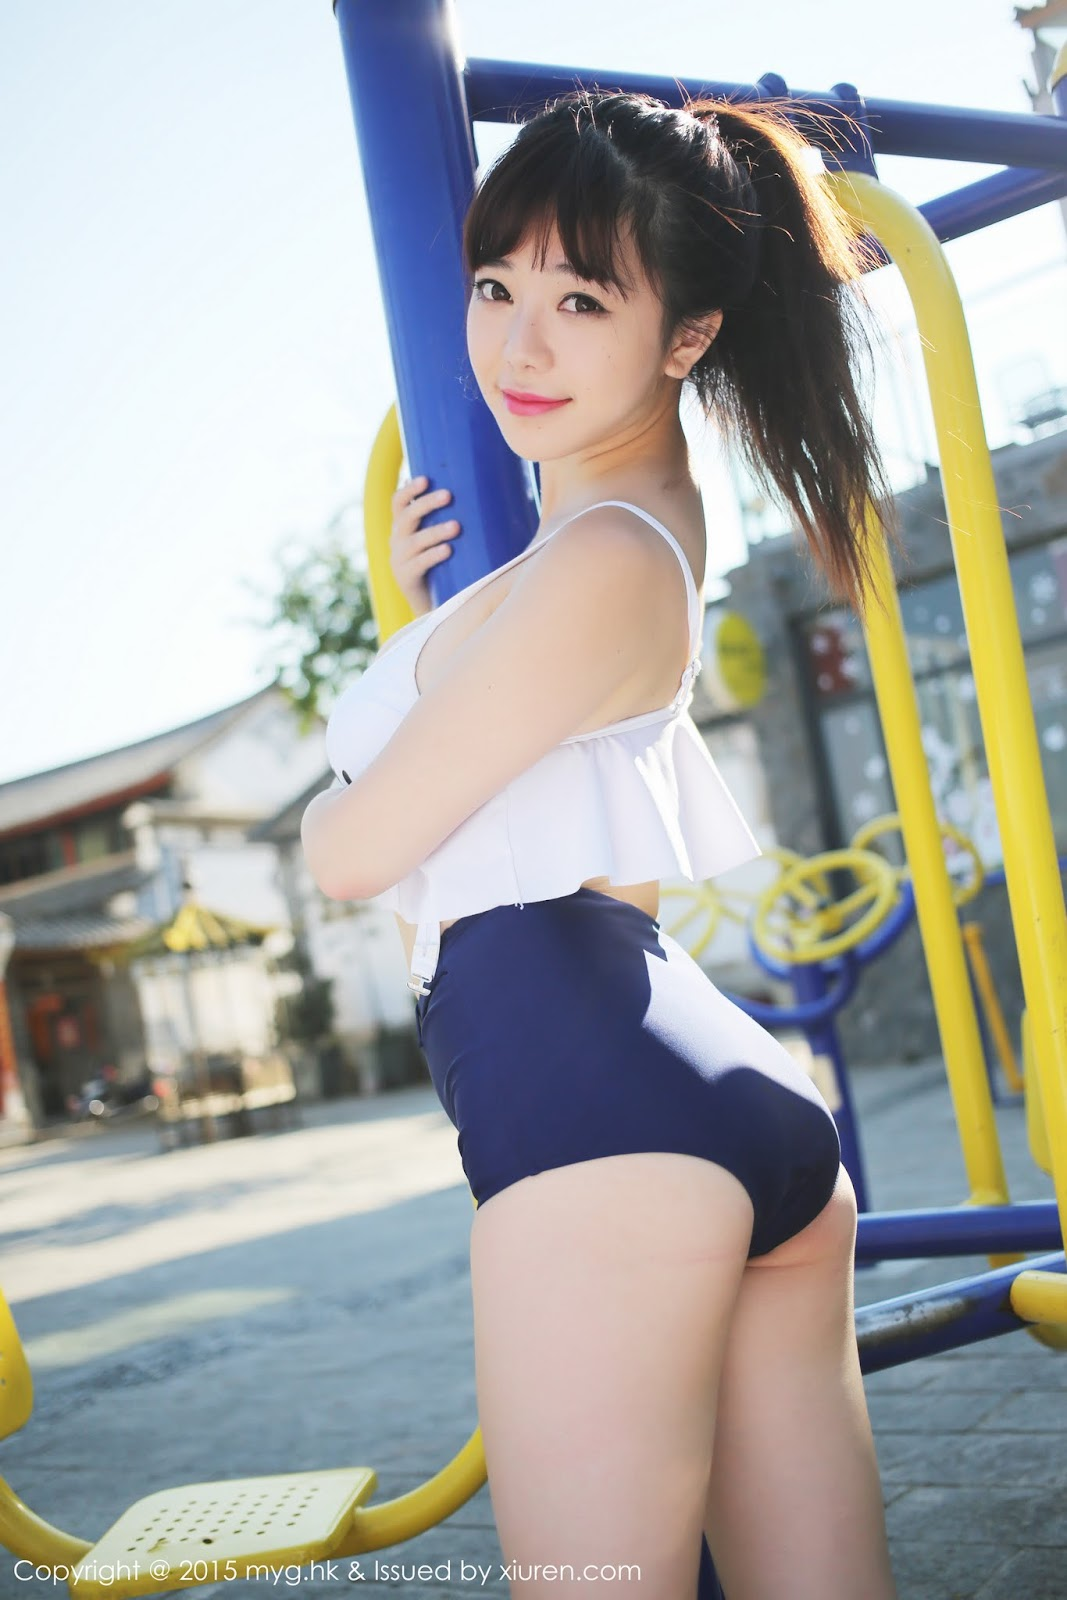 115%2B%252821%2529 - Sexy Girl MYGIRL VOL.115 FAYE